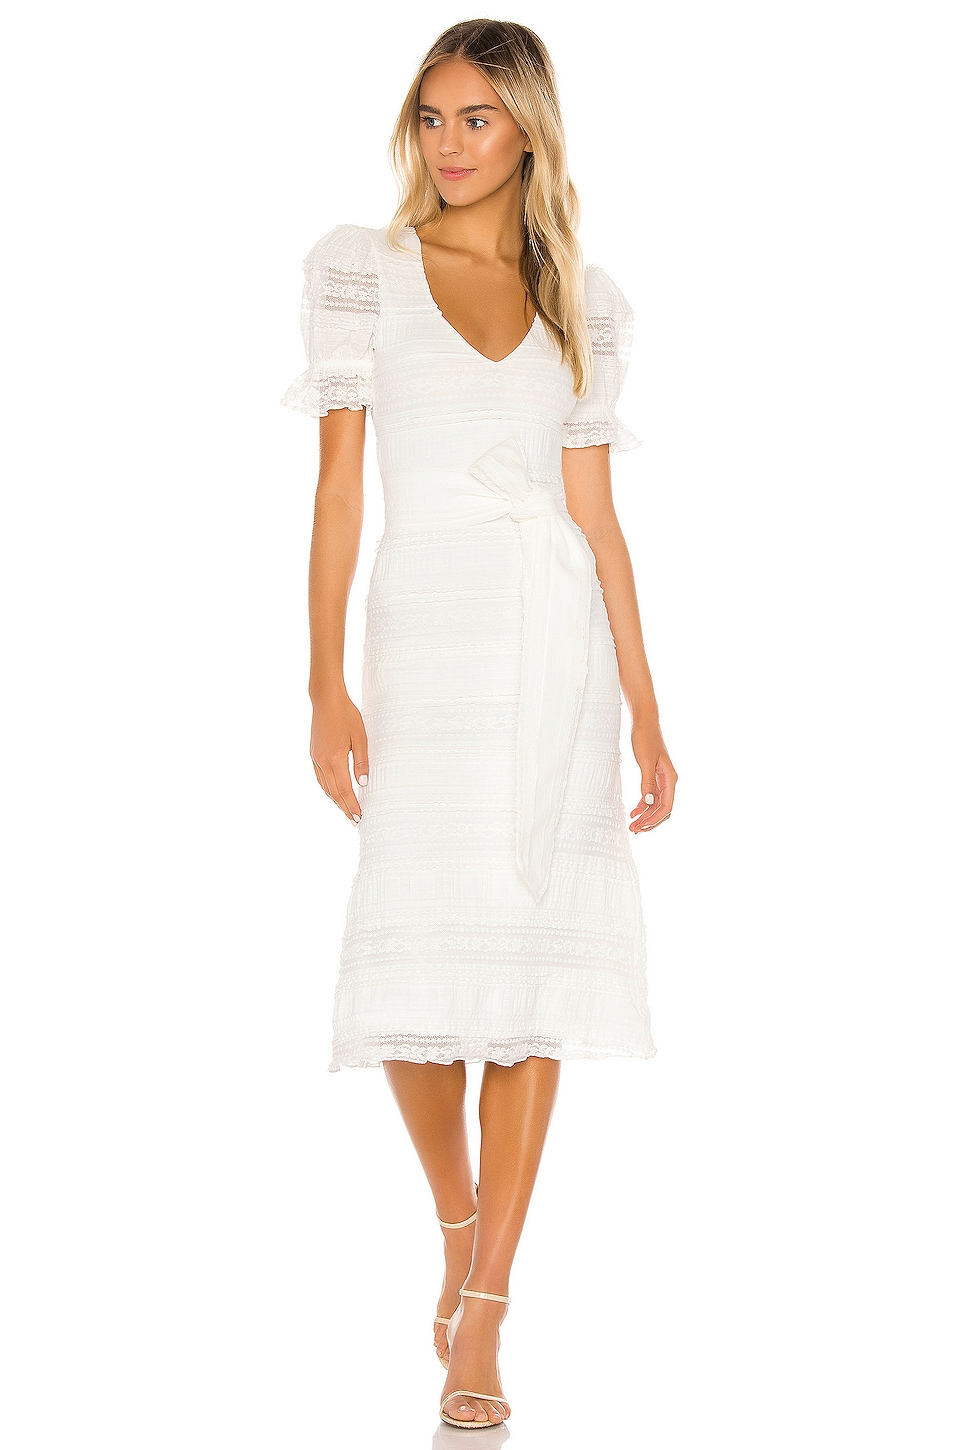 Quinn Midi Dress             Tularosa                                                                                                       CA$ 226.98 18